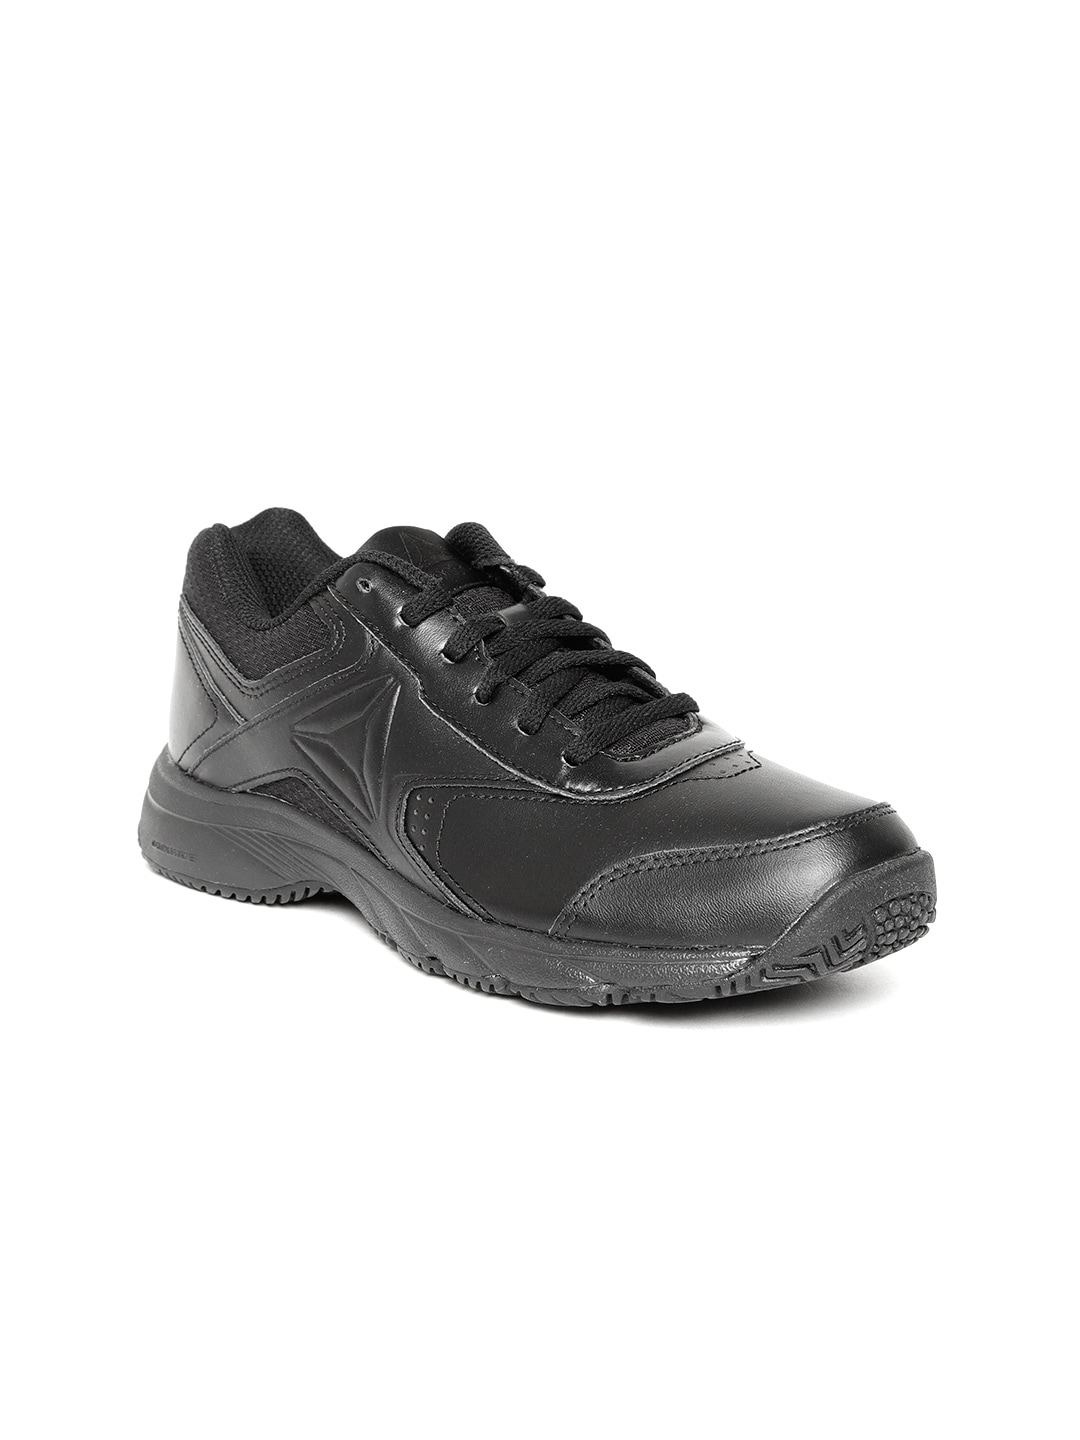 0204c892c5f3 Women Reebok Shoes - Buy Rebook Shoes for Women Online